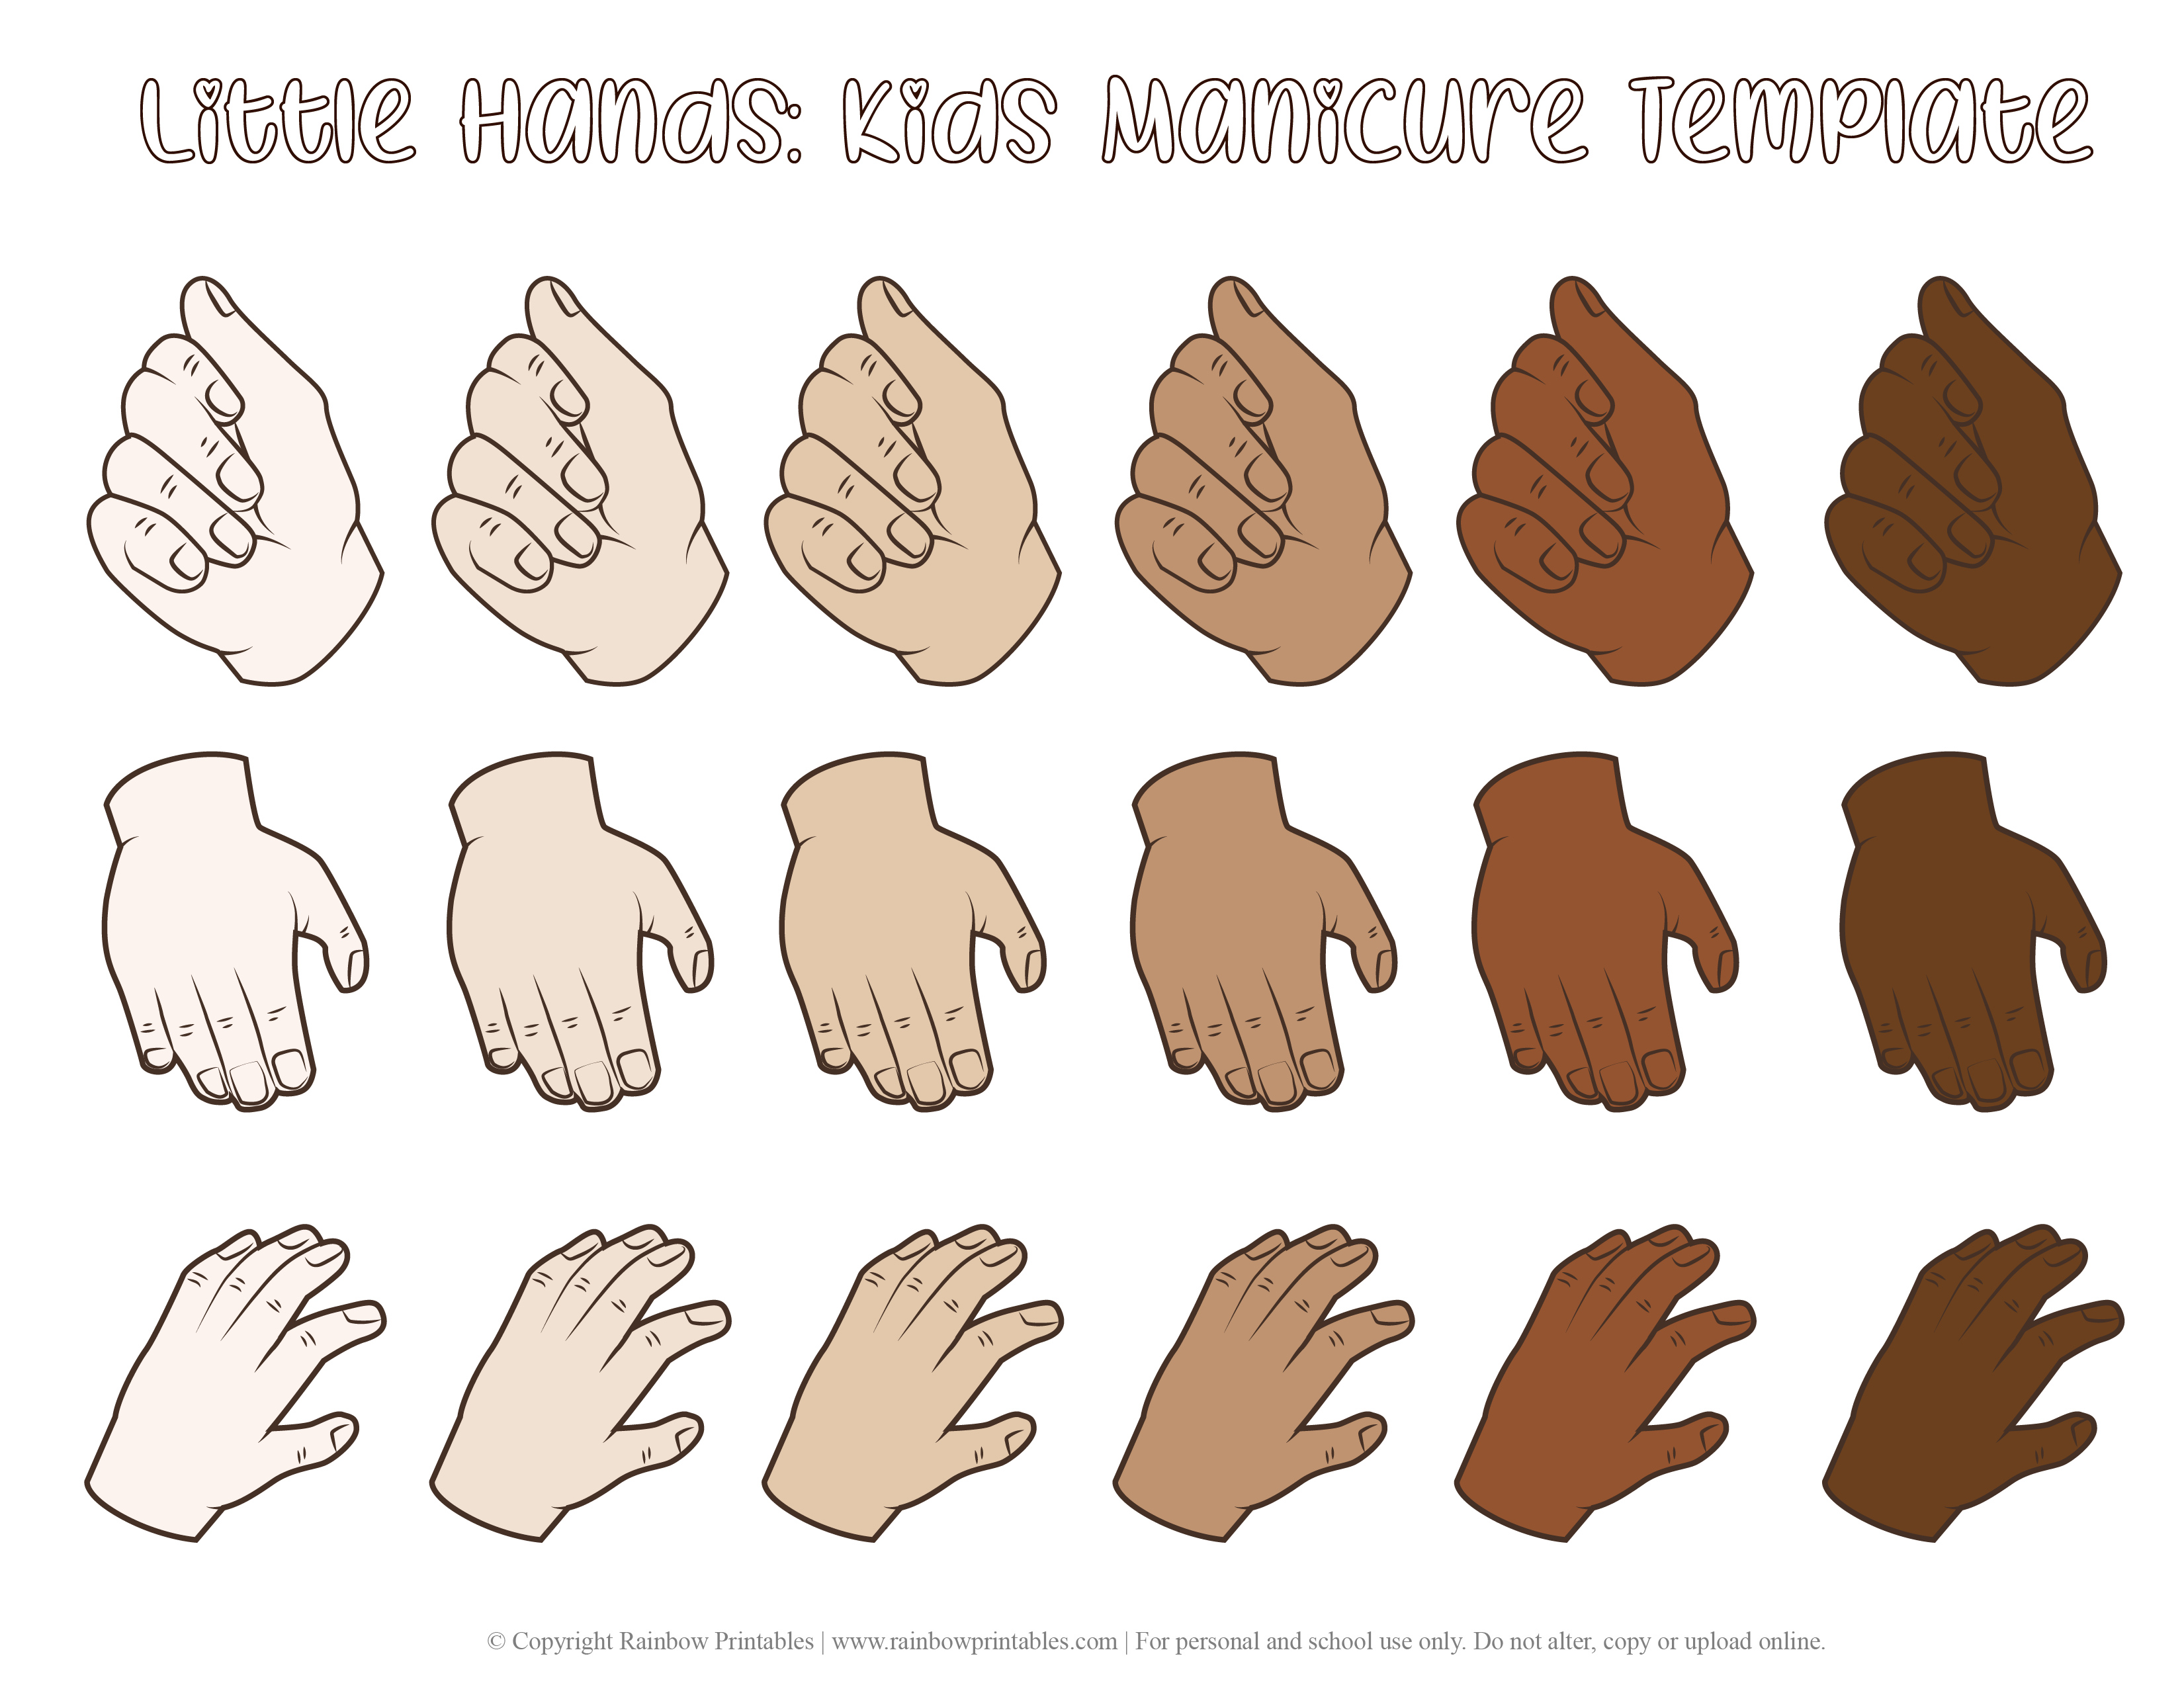 Little Kids Manicure Template Hands Nail Polish Beauty Figurine Makeup Nail Design Pedicure Colored Line Drawing Illustration SKIN TONE